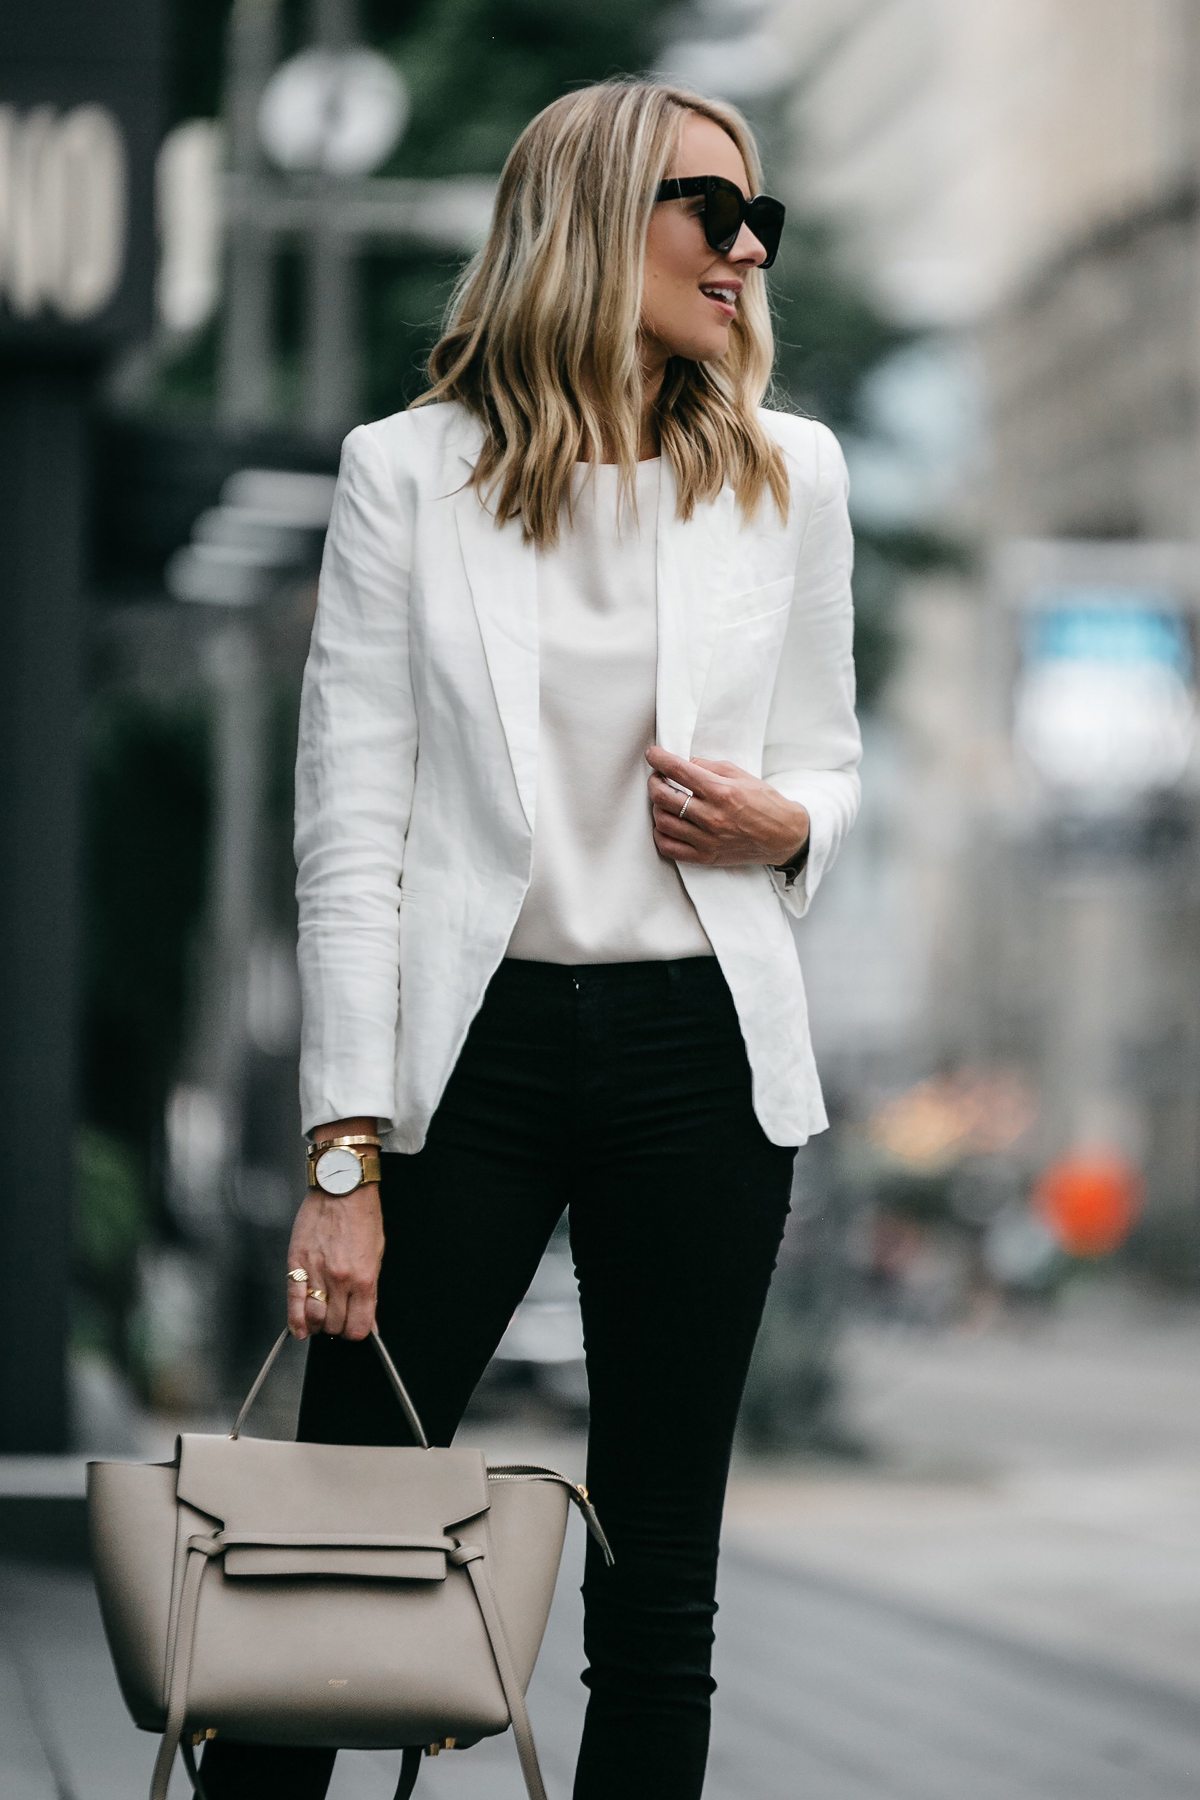 Blonde Woman Wearing Stitch Fix Outfit Joie White Blazer J Brand Black Skinny Jeans Celine Belt Handbag Fashion Jackson Dallas Blogger Fashion Blogger Street Style